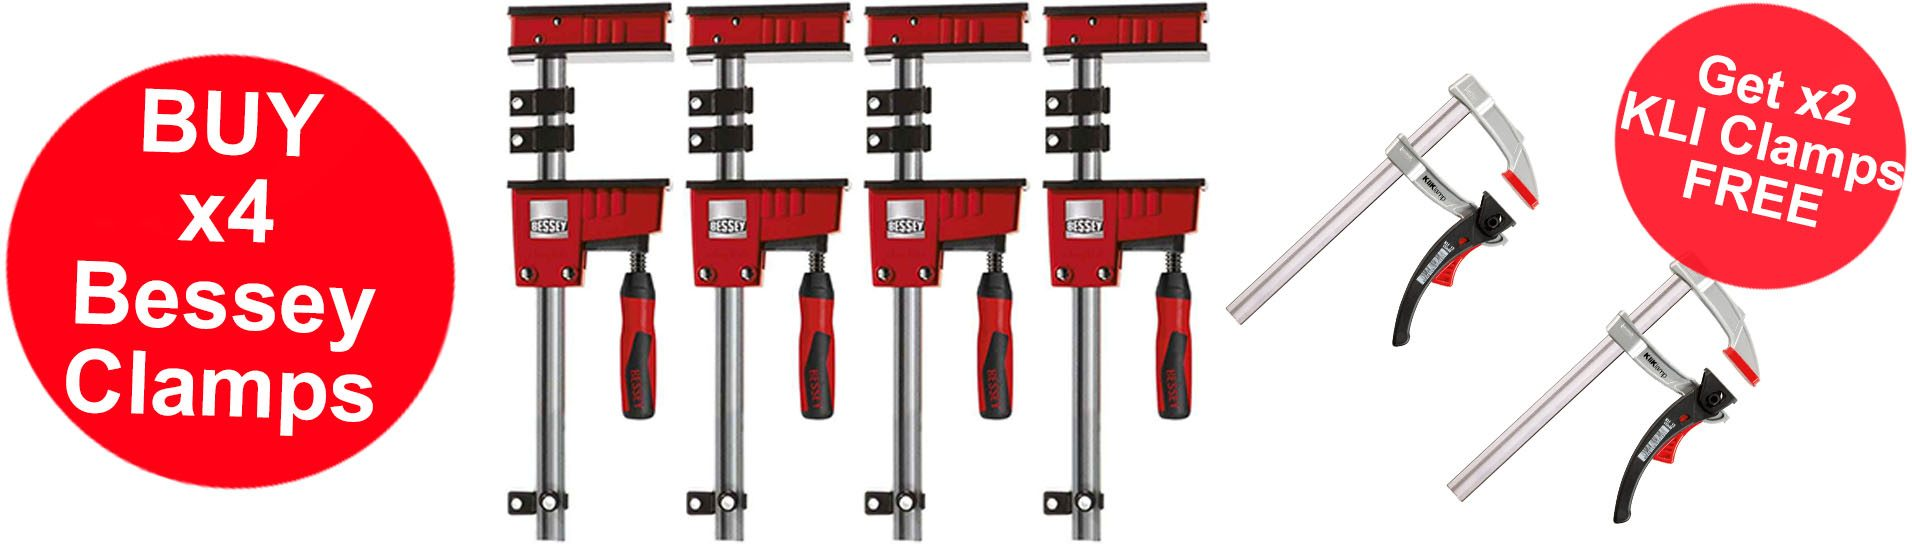 Bessey Quad Pack Deals